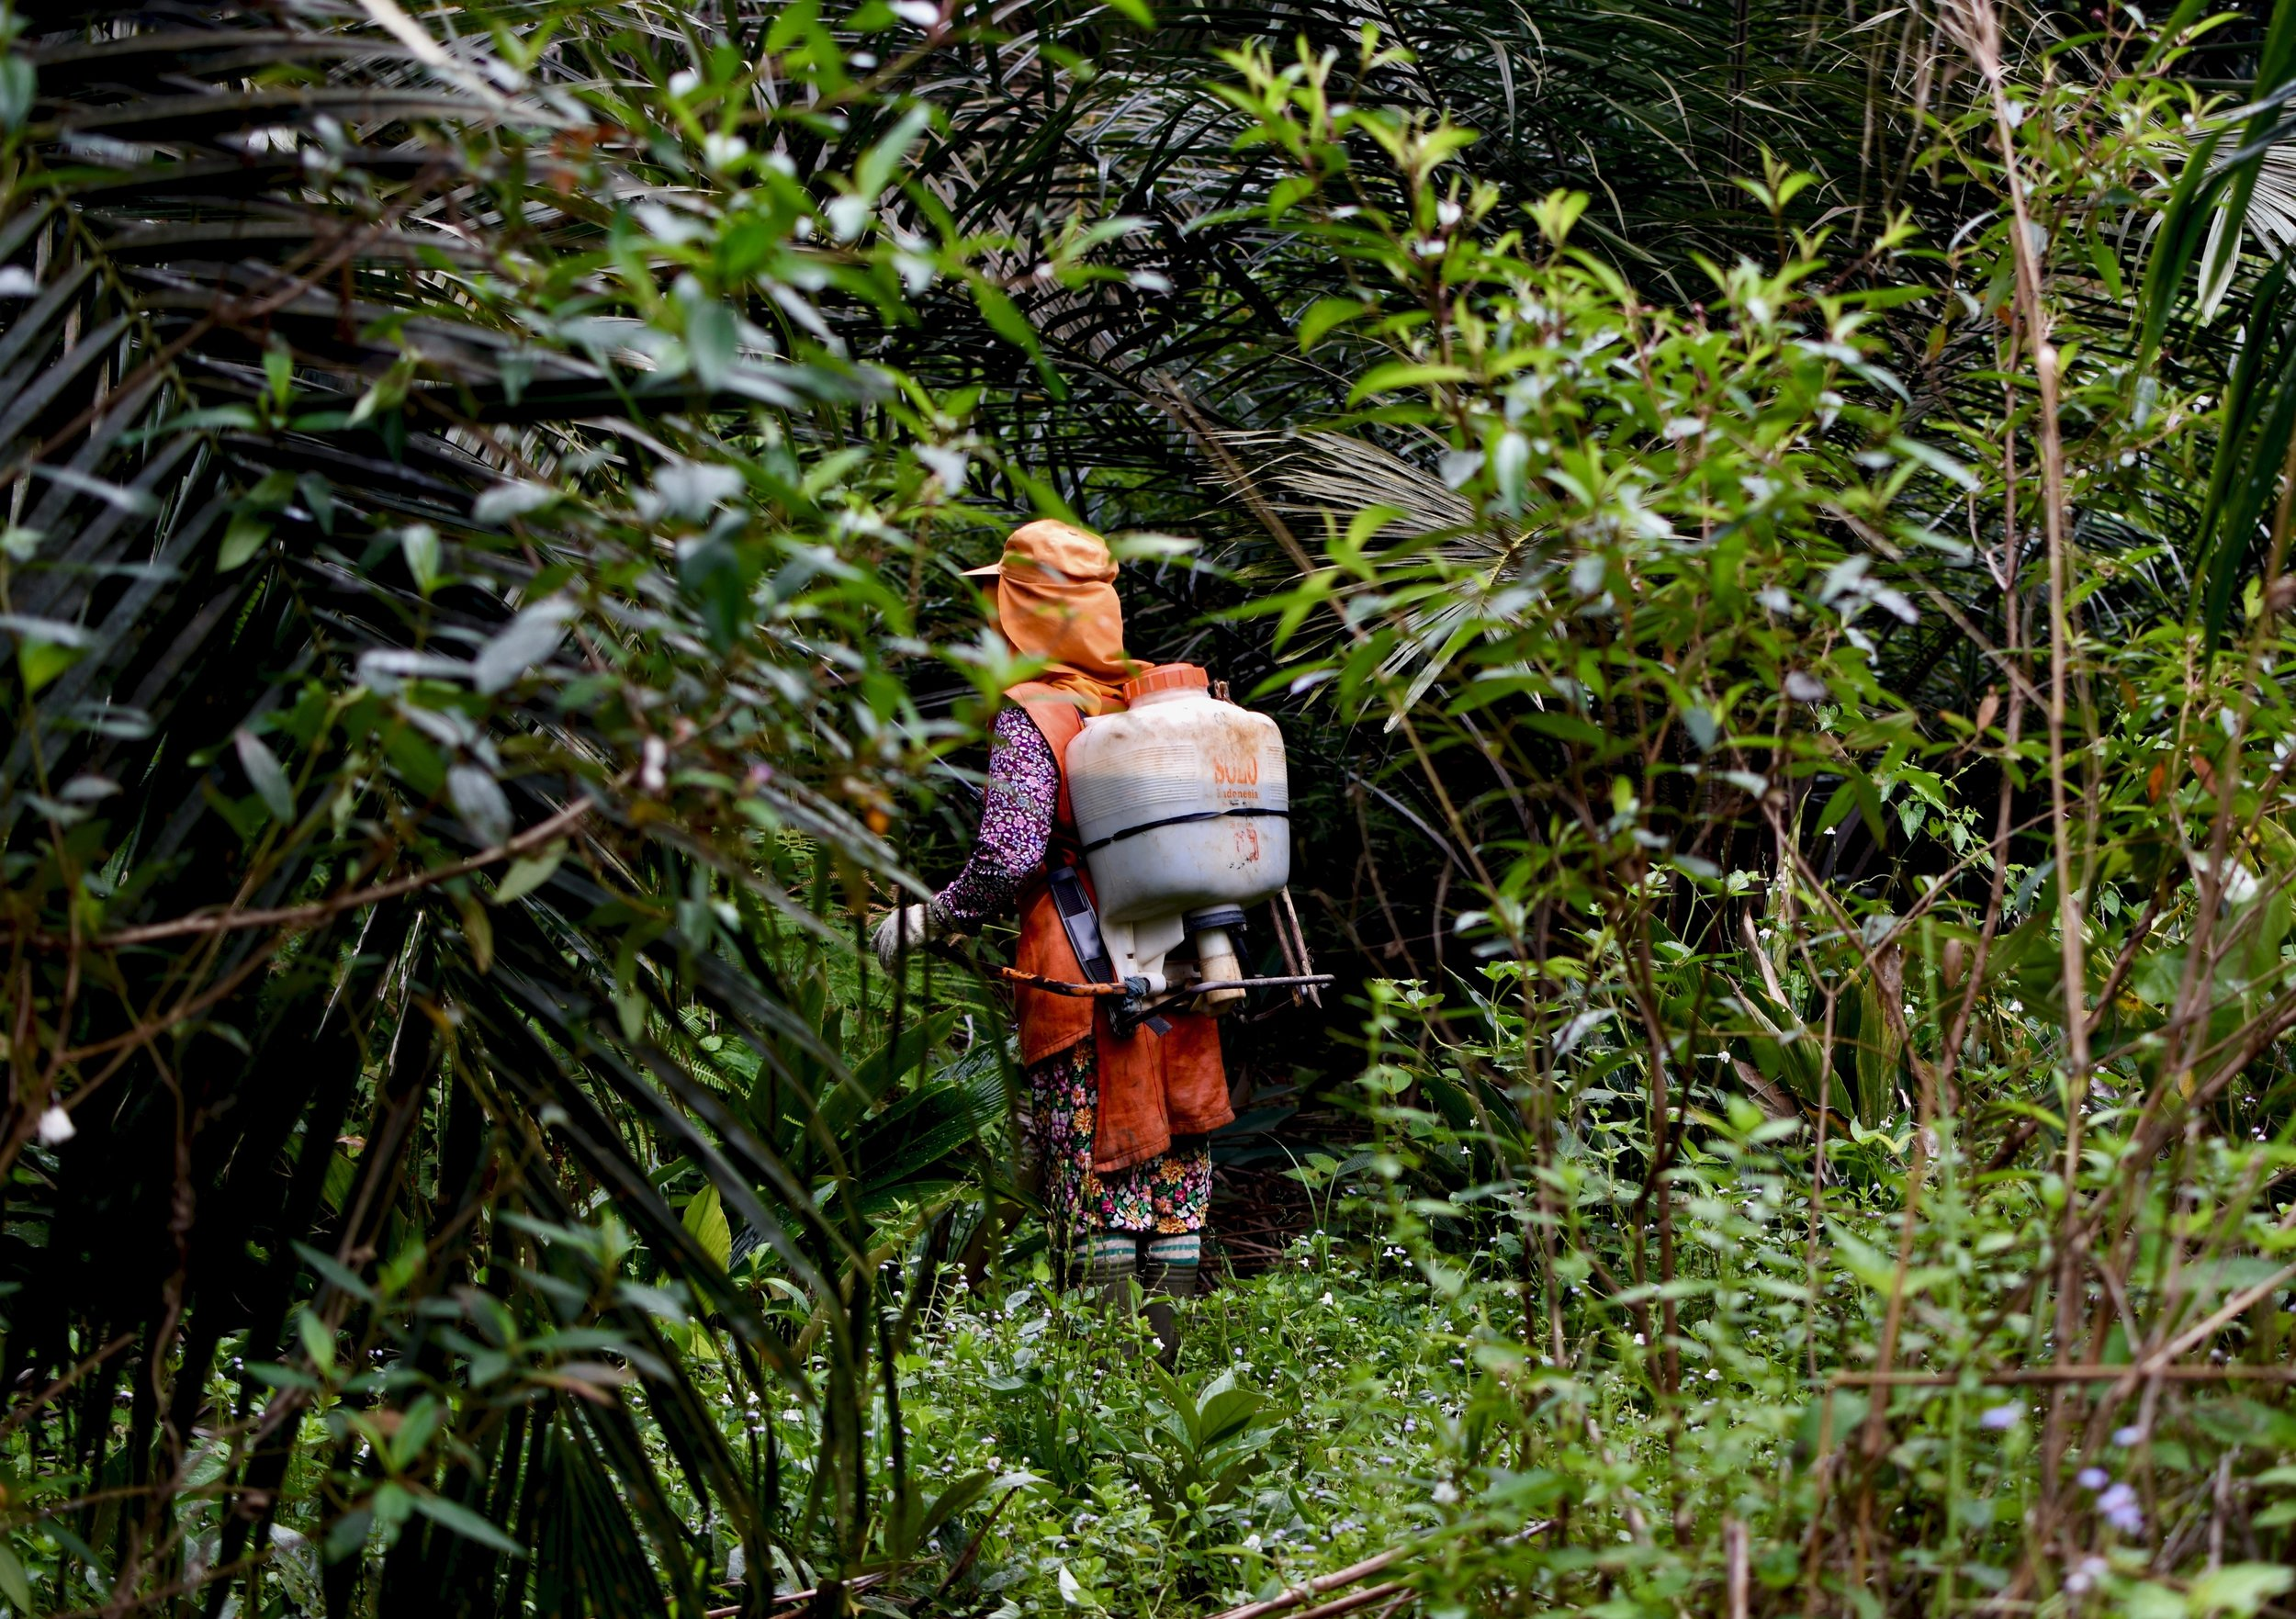 'I've never been normal again': Indonesian women risk health to supply palm oil to the West